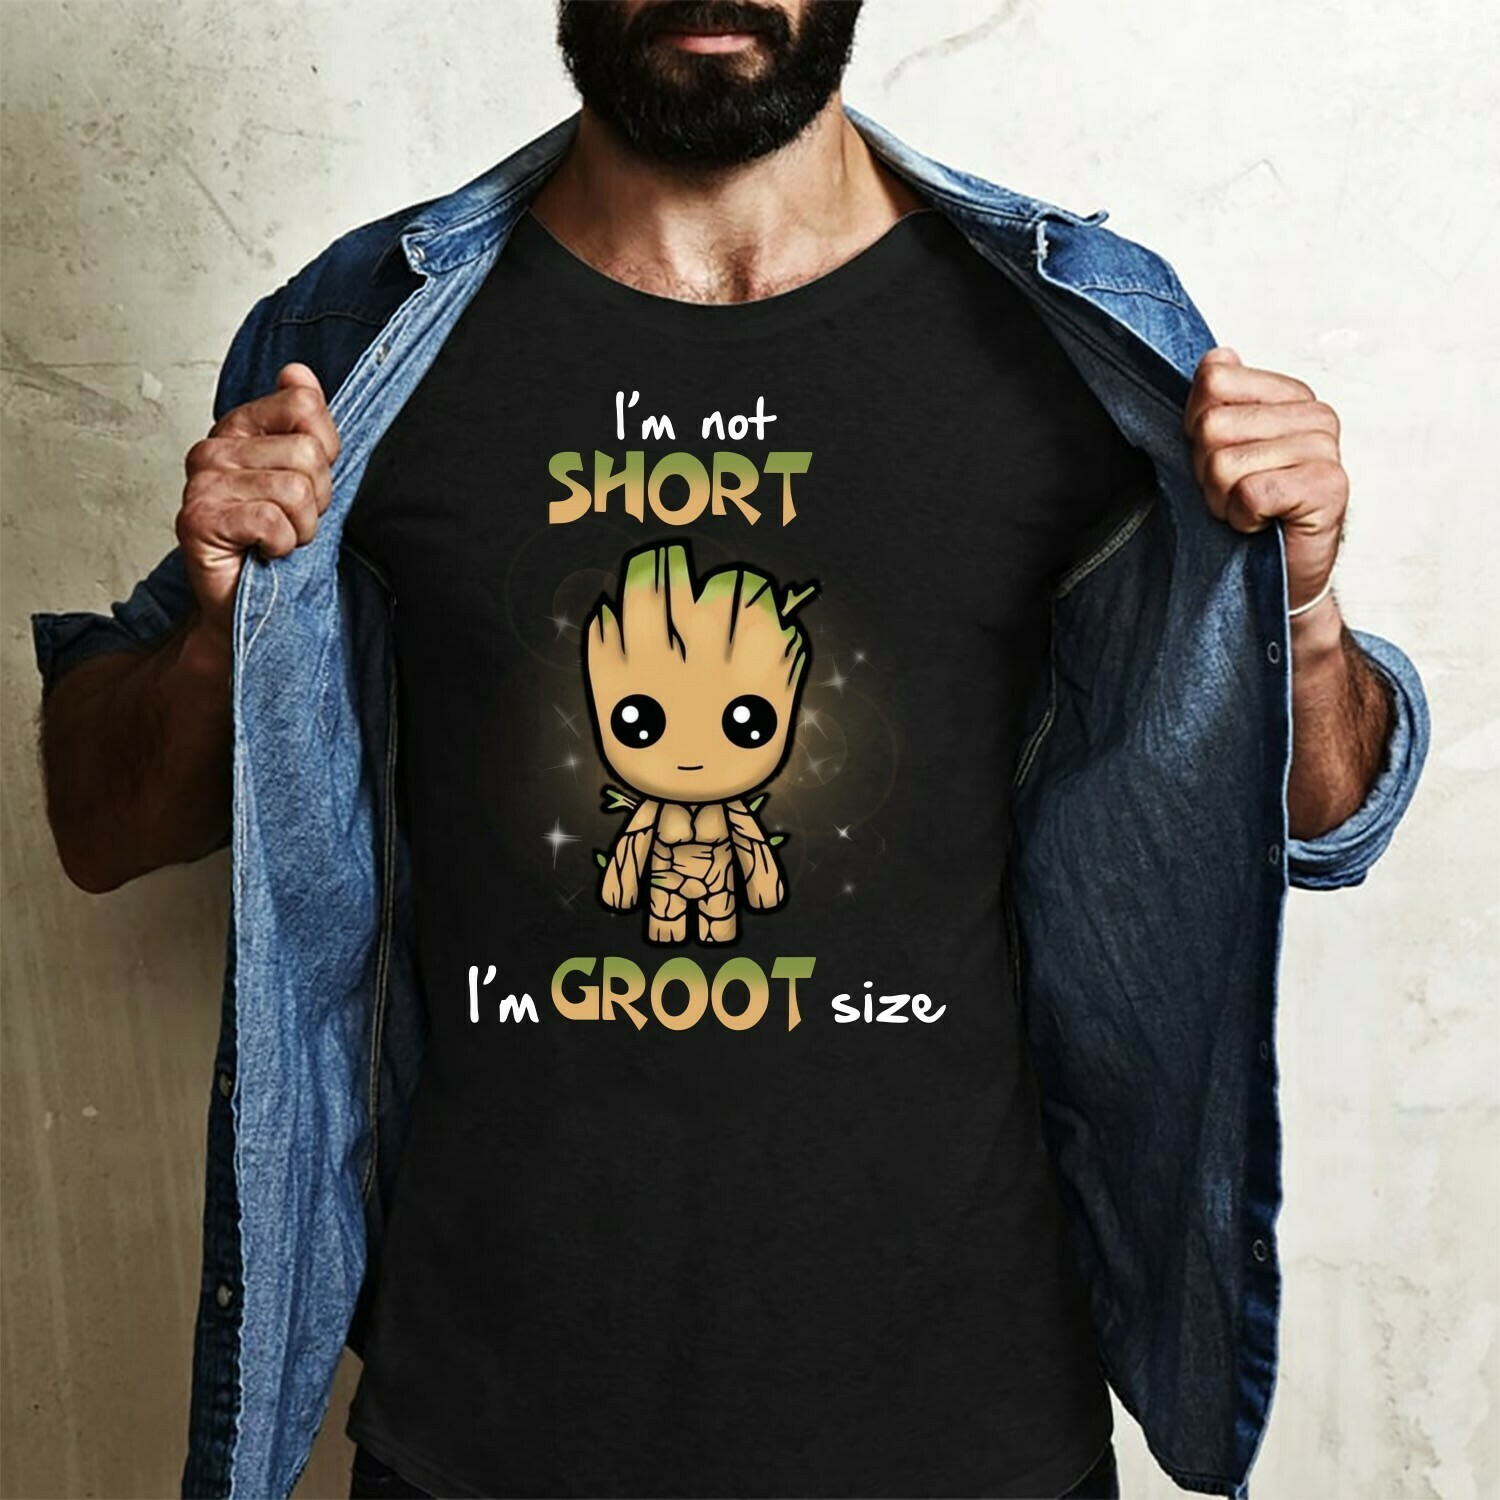 I'm not short i'm groot size,Groot Novelty Gift,Best friends of the Galaxy tee,Star war The Mandalorian Mixed Groot T shirt Long Sleeve Sweatshirt Hoodie Jolly Family Gifts